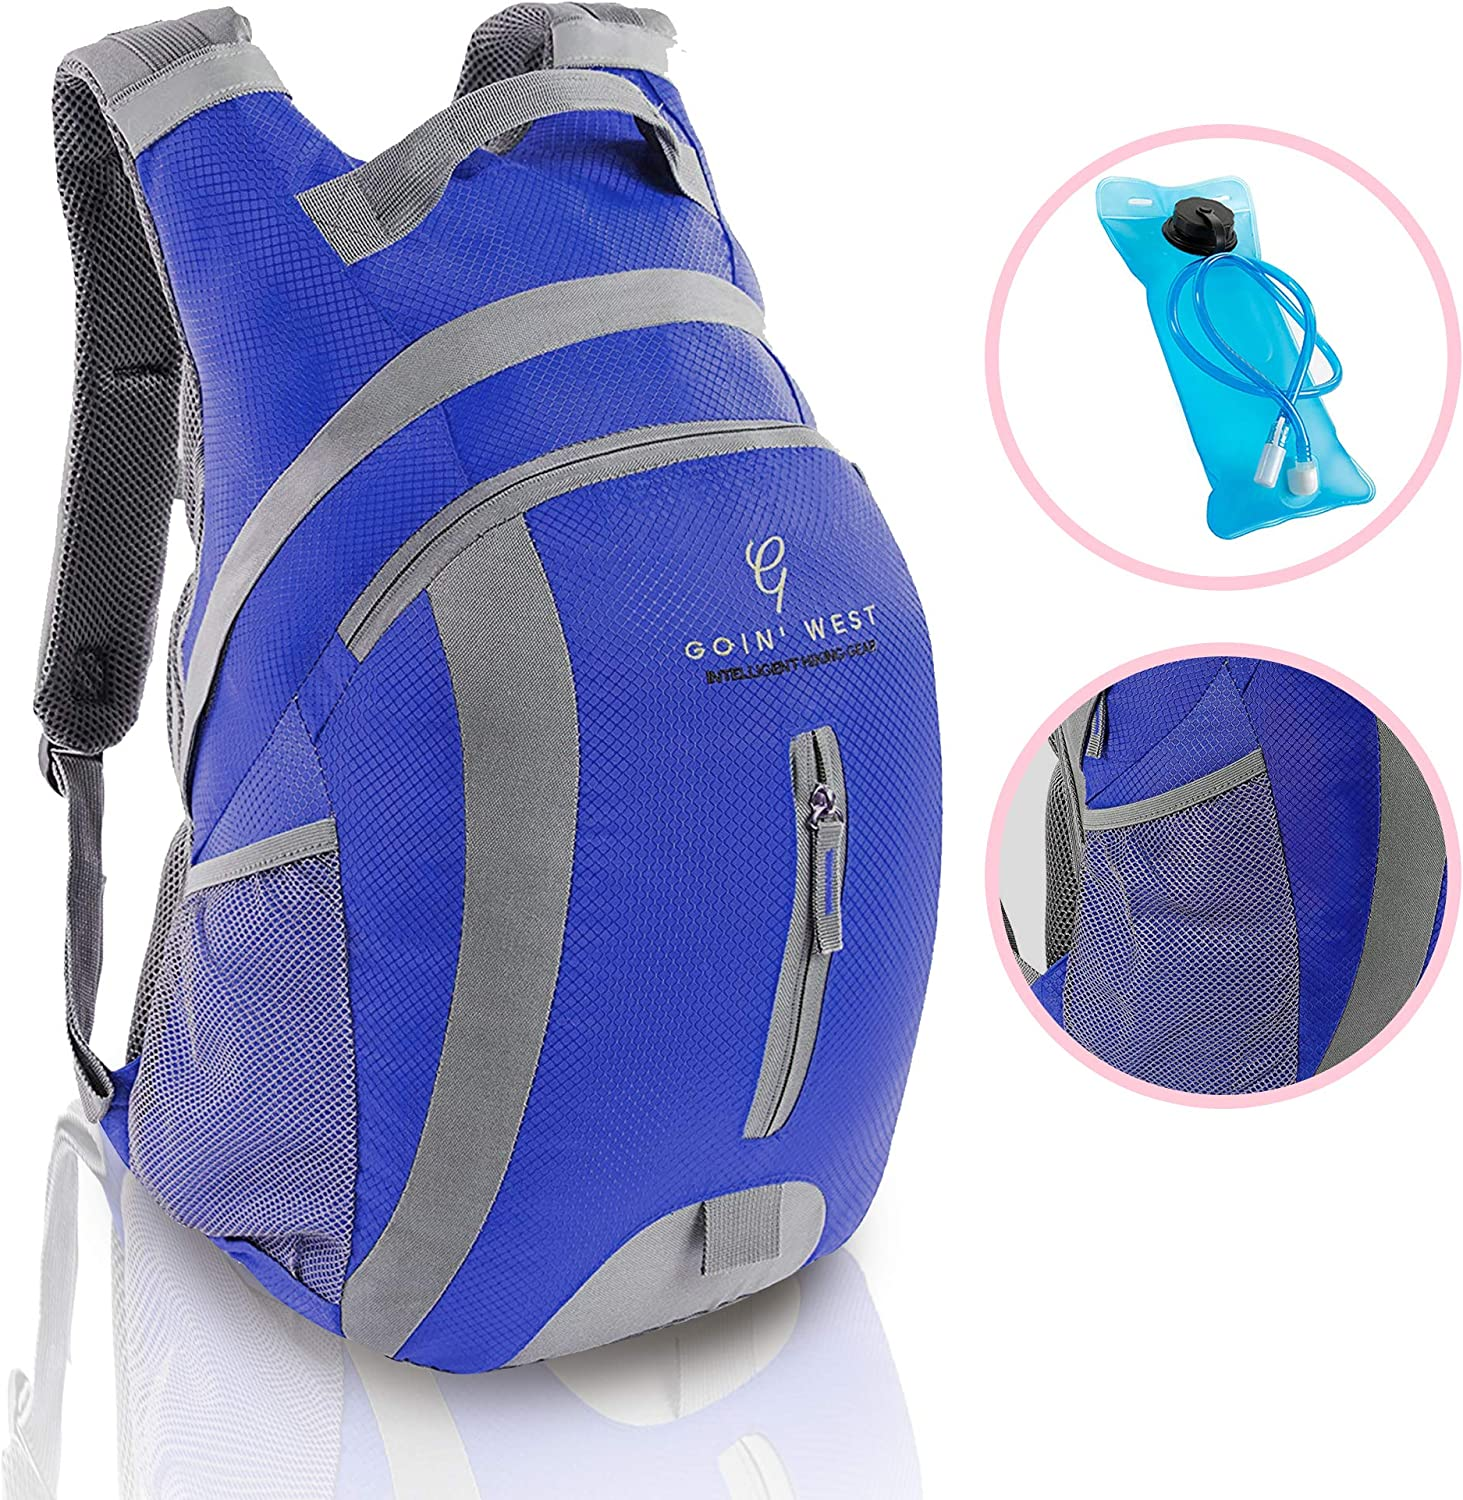 30L Hydration Pack Hiking Backpack – Ultralight, Extremely Comfortable with Double Buckle Technology – 2L BPA Free Water Bladder – For Running, Hiking, Backpacking, Cycling Camping.